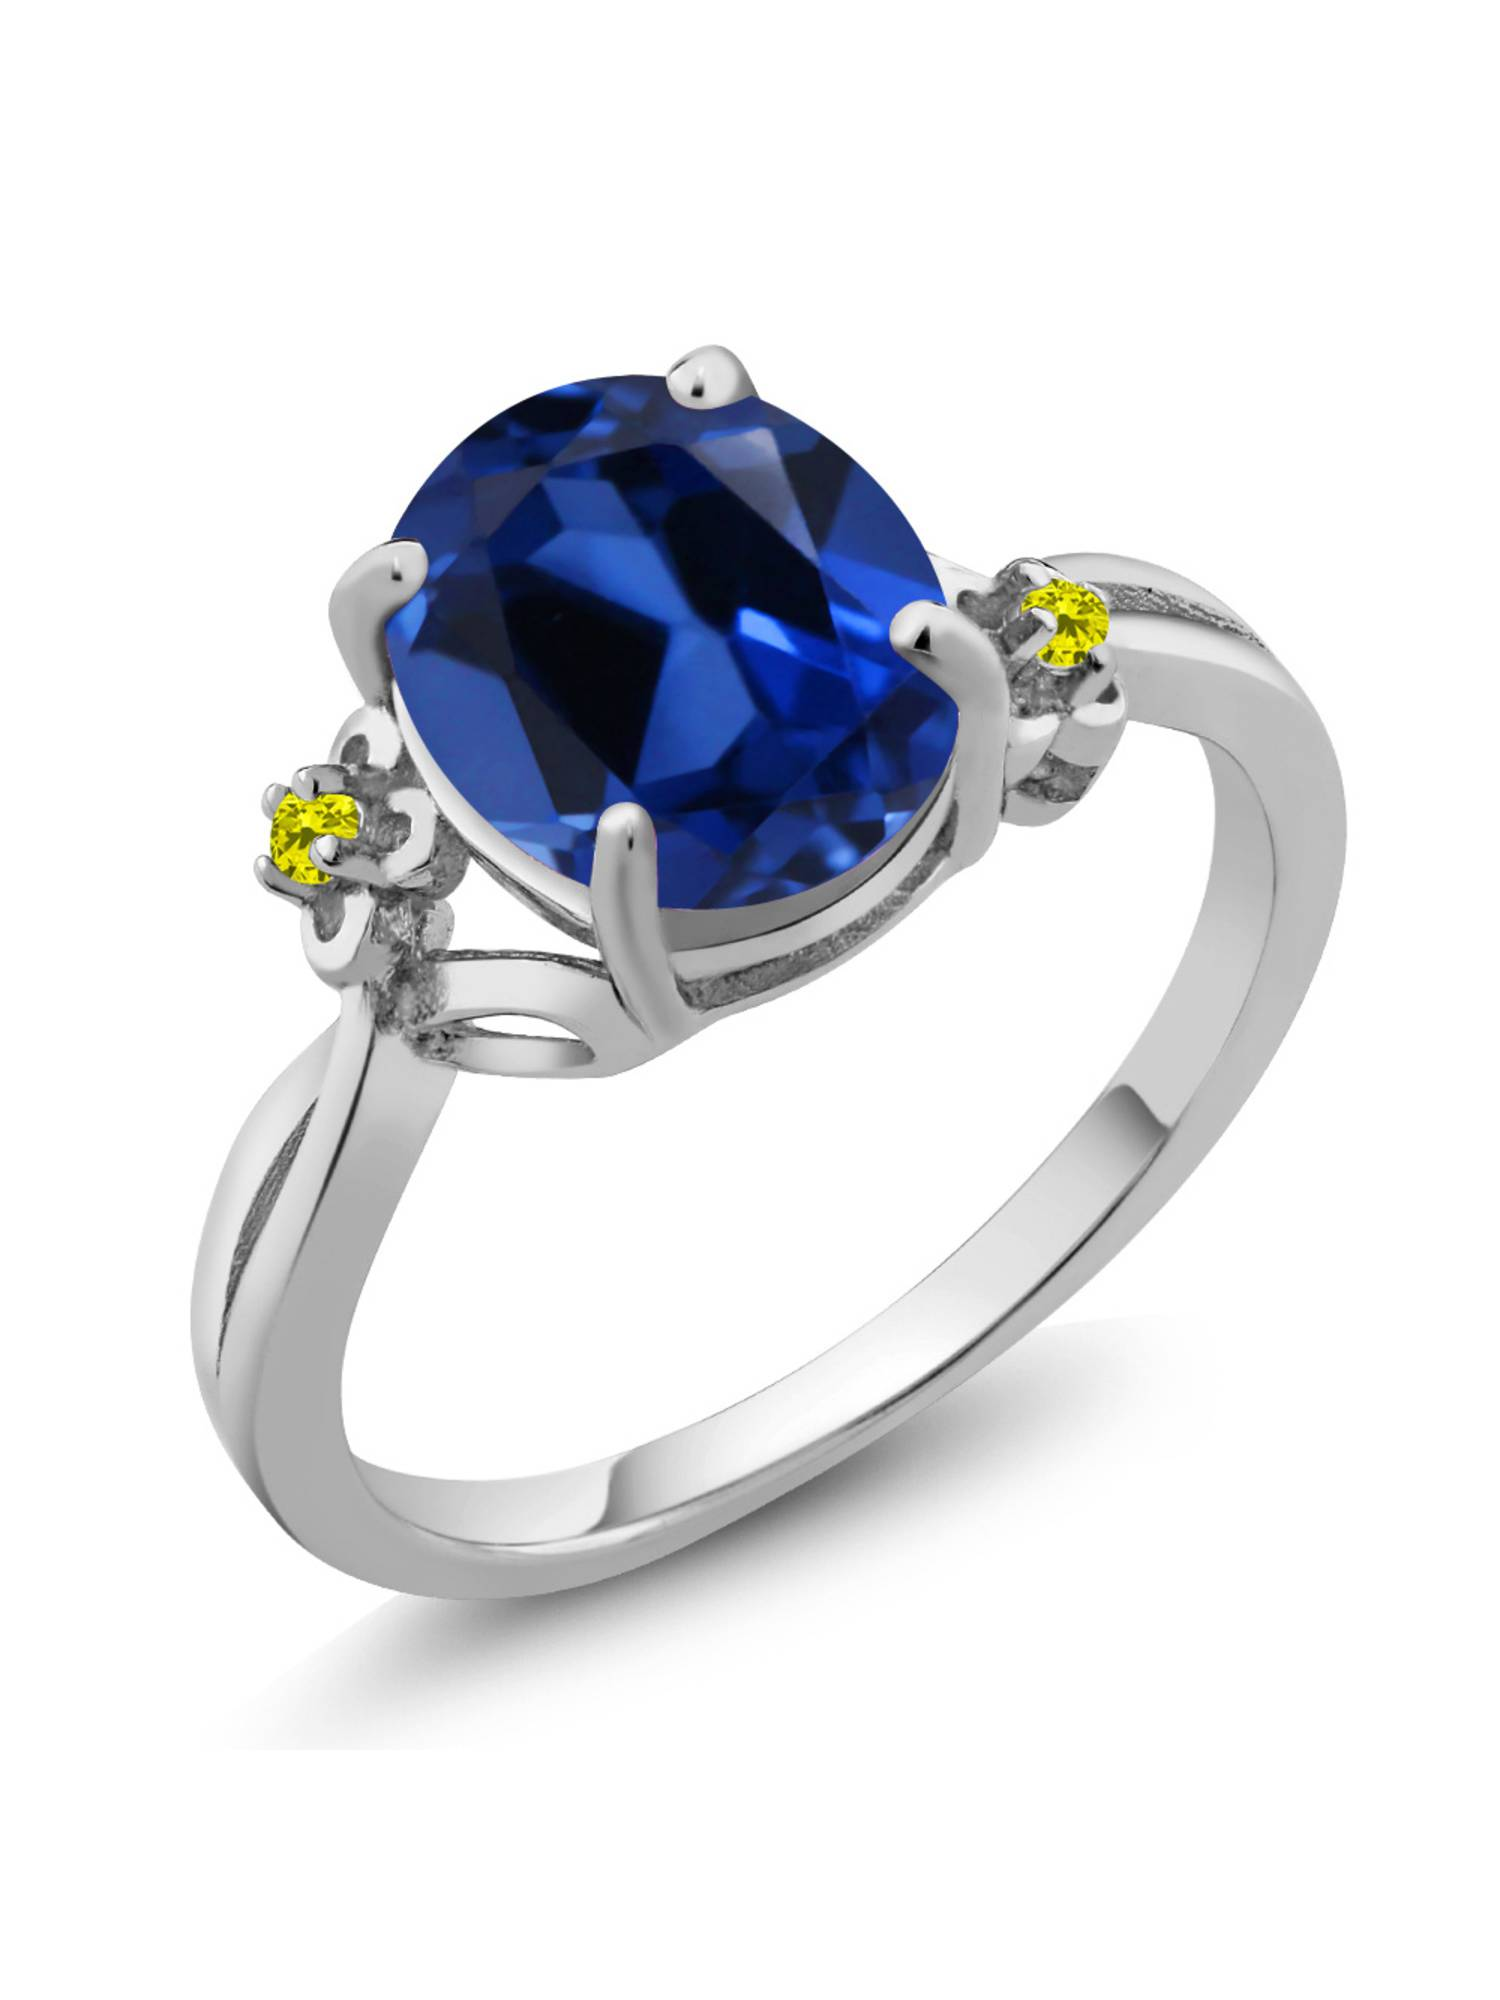 3.38 Ct Oval Blue Simulated Sapphire Diamond 14K White Gold Ring by